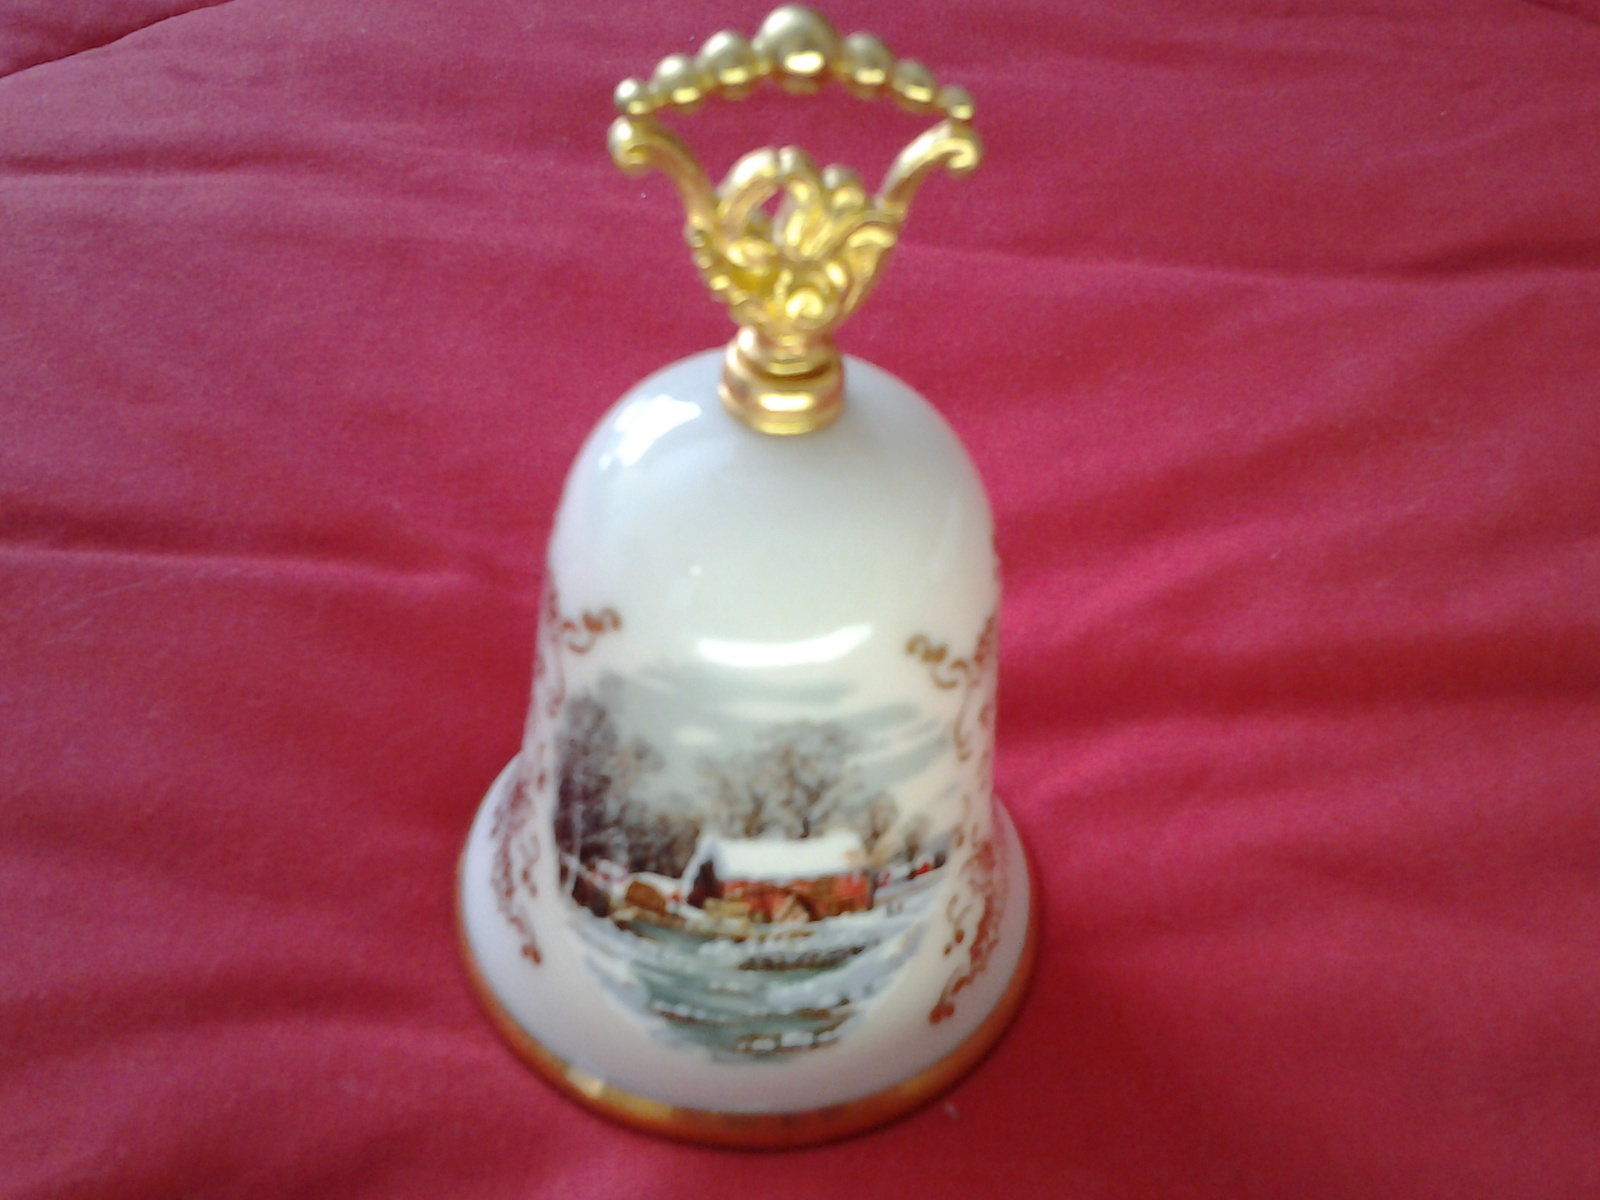 Gorham Currier & Ives Christmas Bell Noel 1978 Gold Holly Victorian Scene